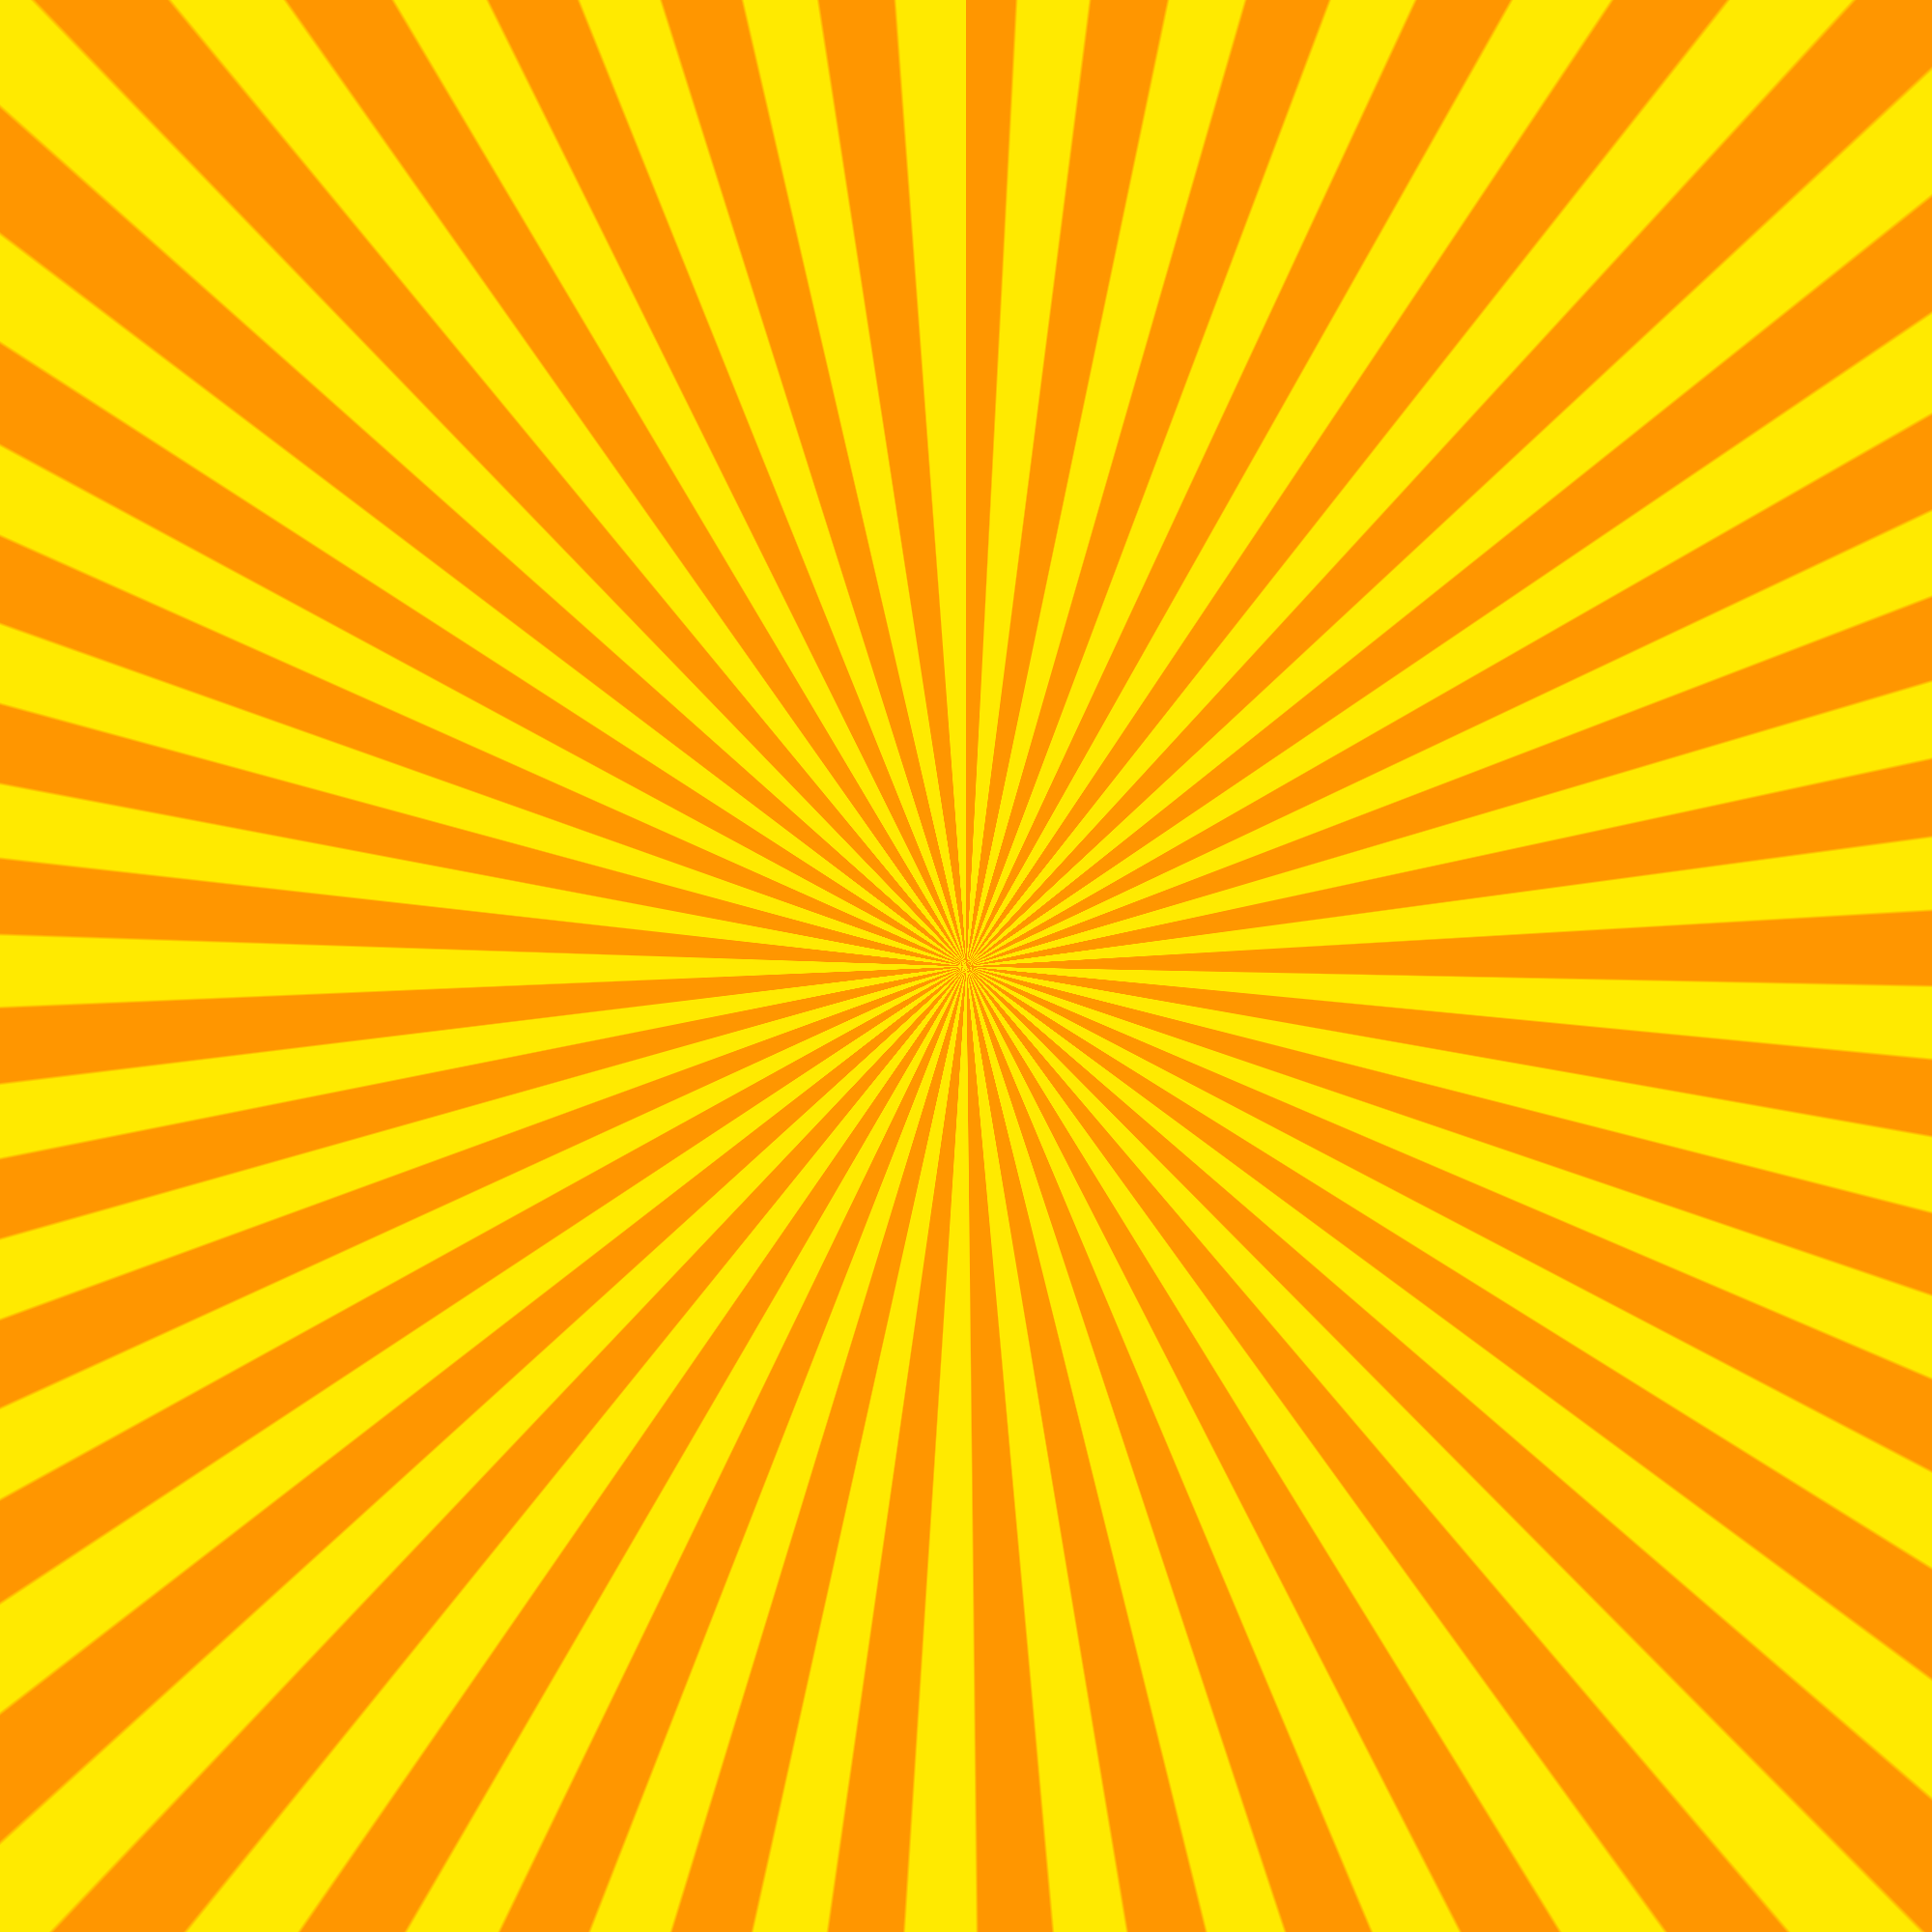 sunburst photoshop background png